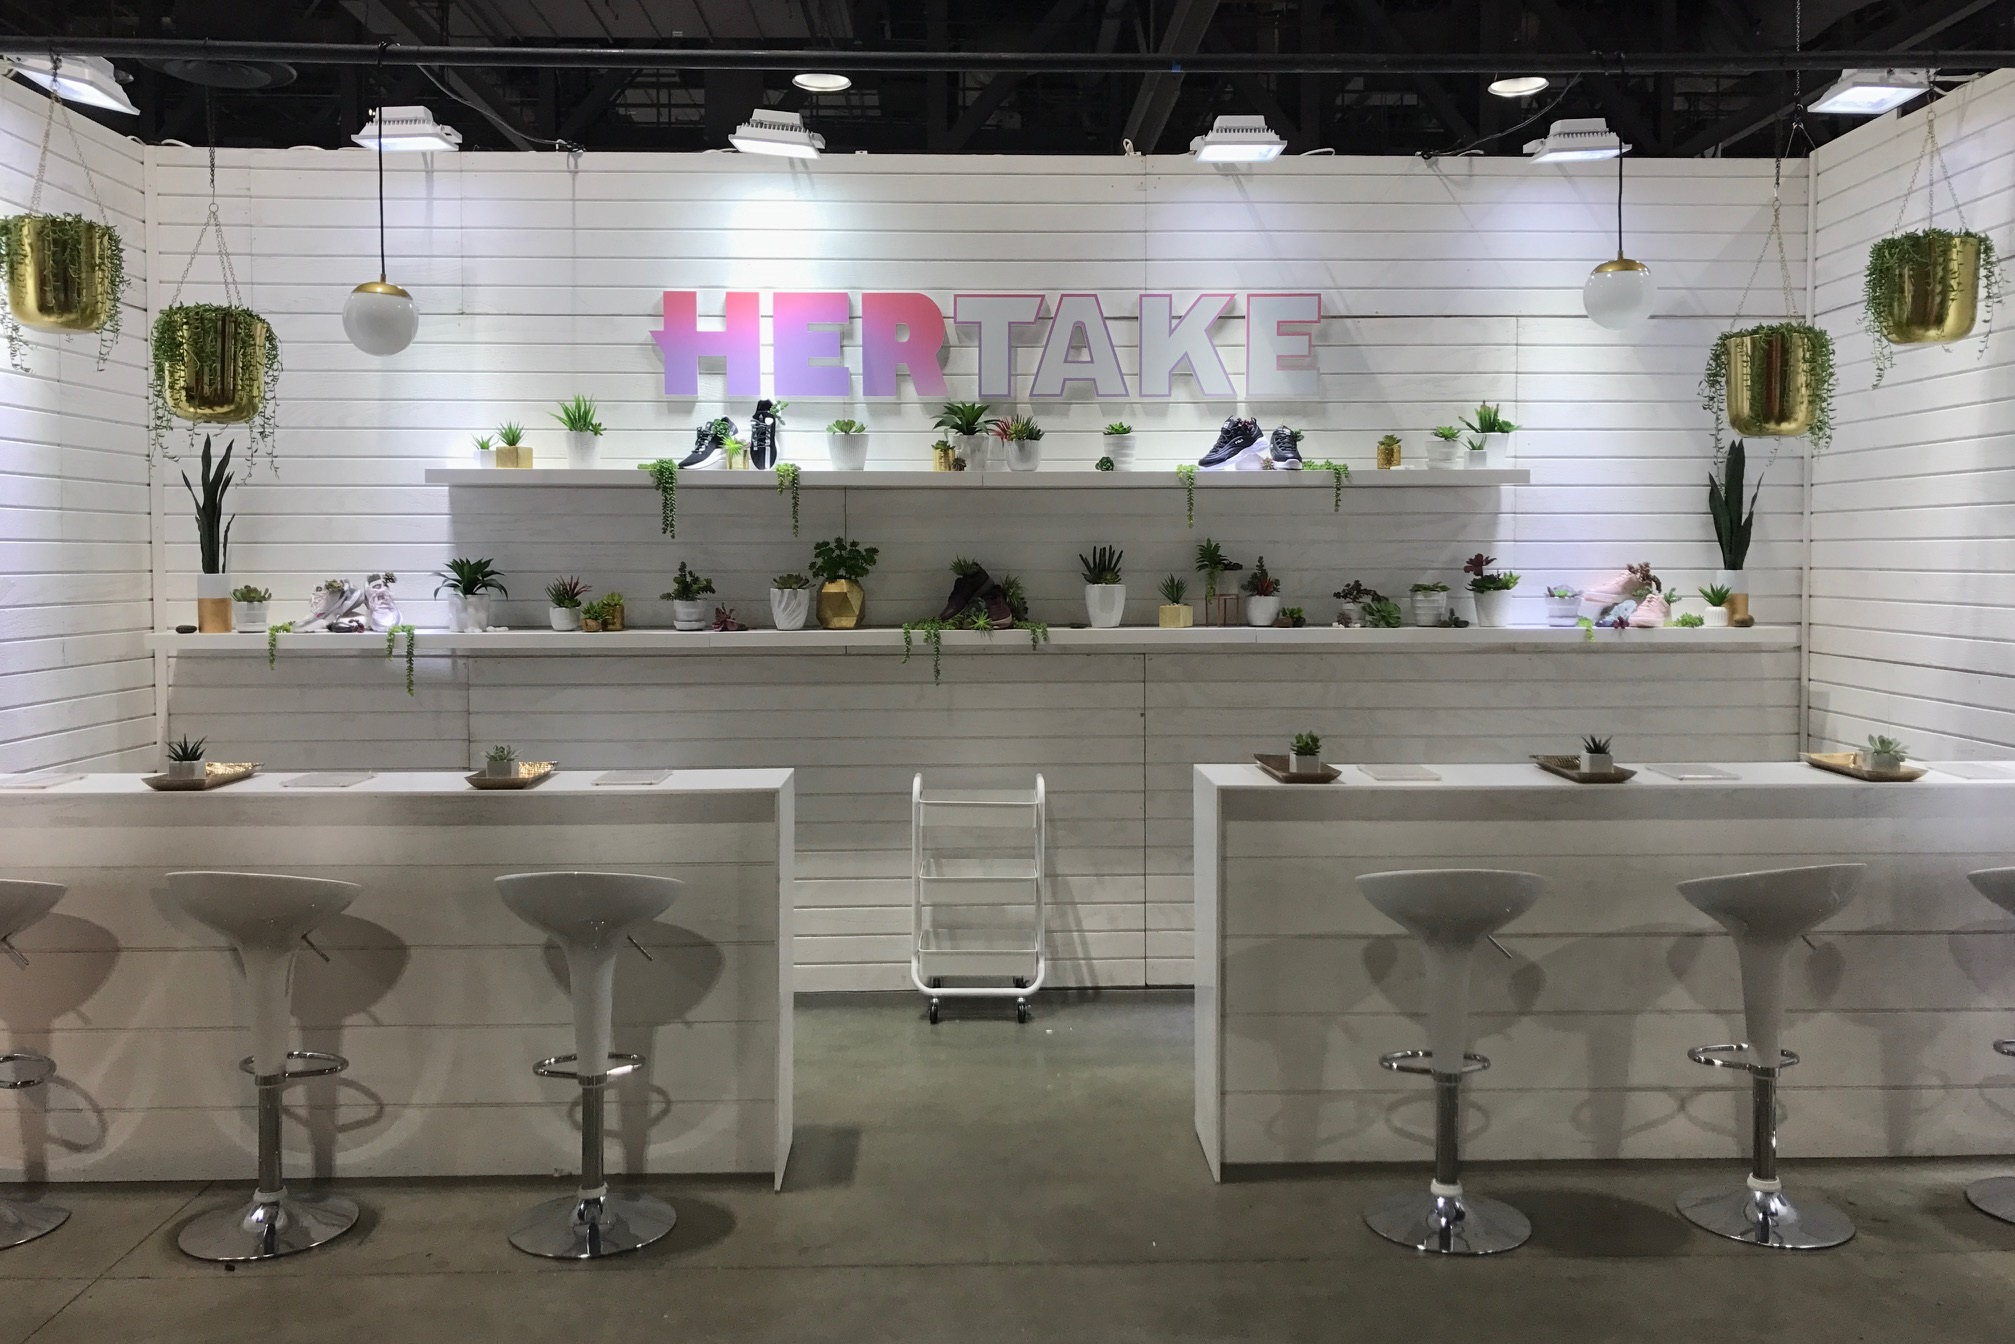 Champ's Her Take  , ComplexCon, Long Beach Convention Center, 2018 Exhibit Styling